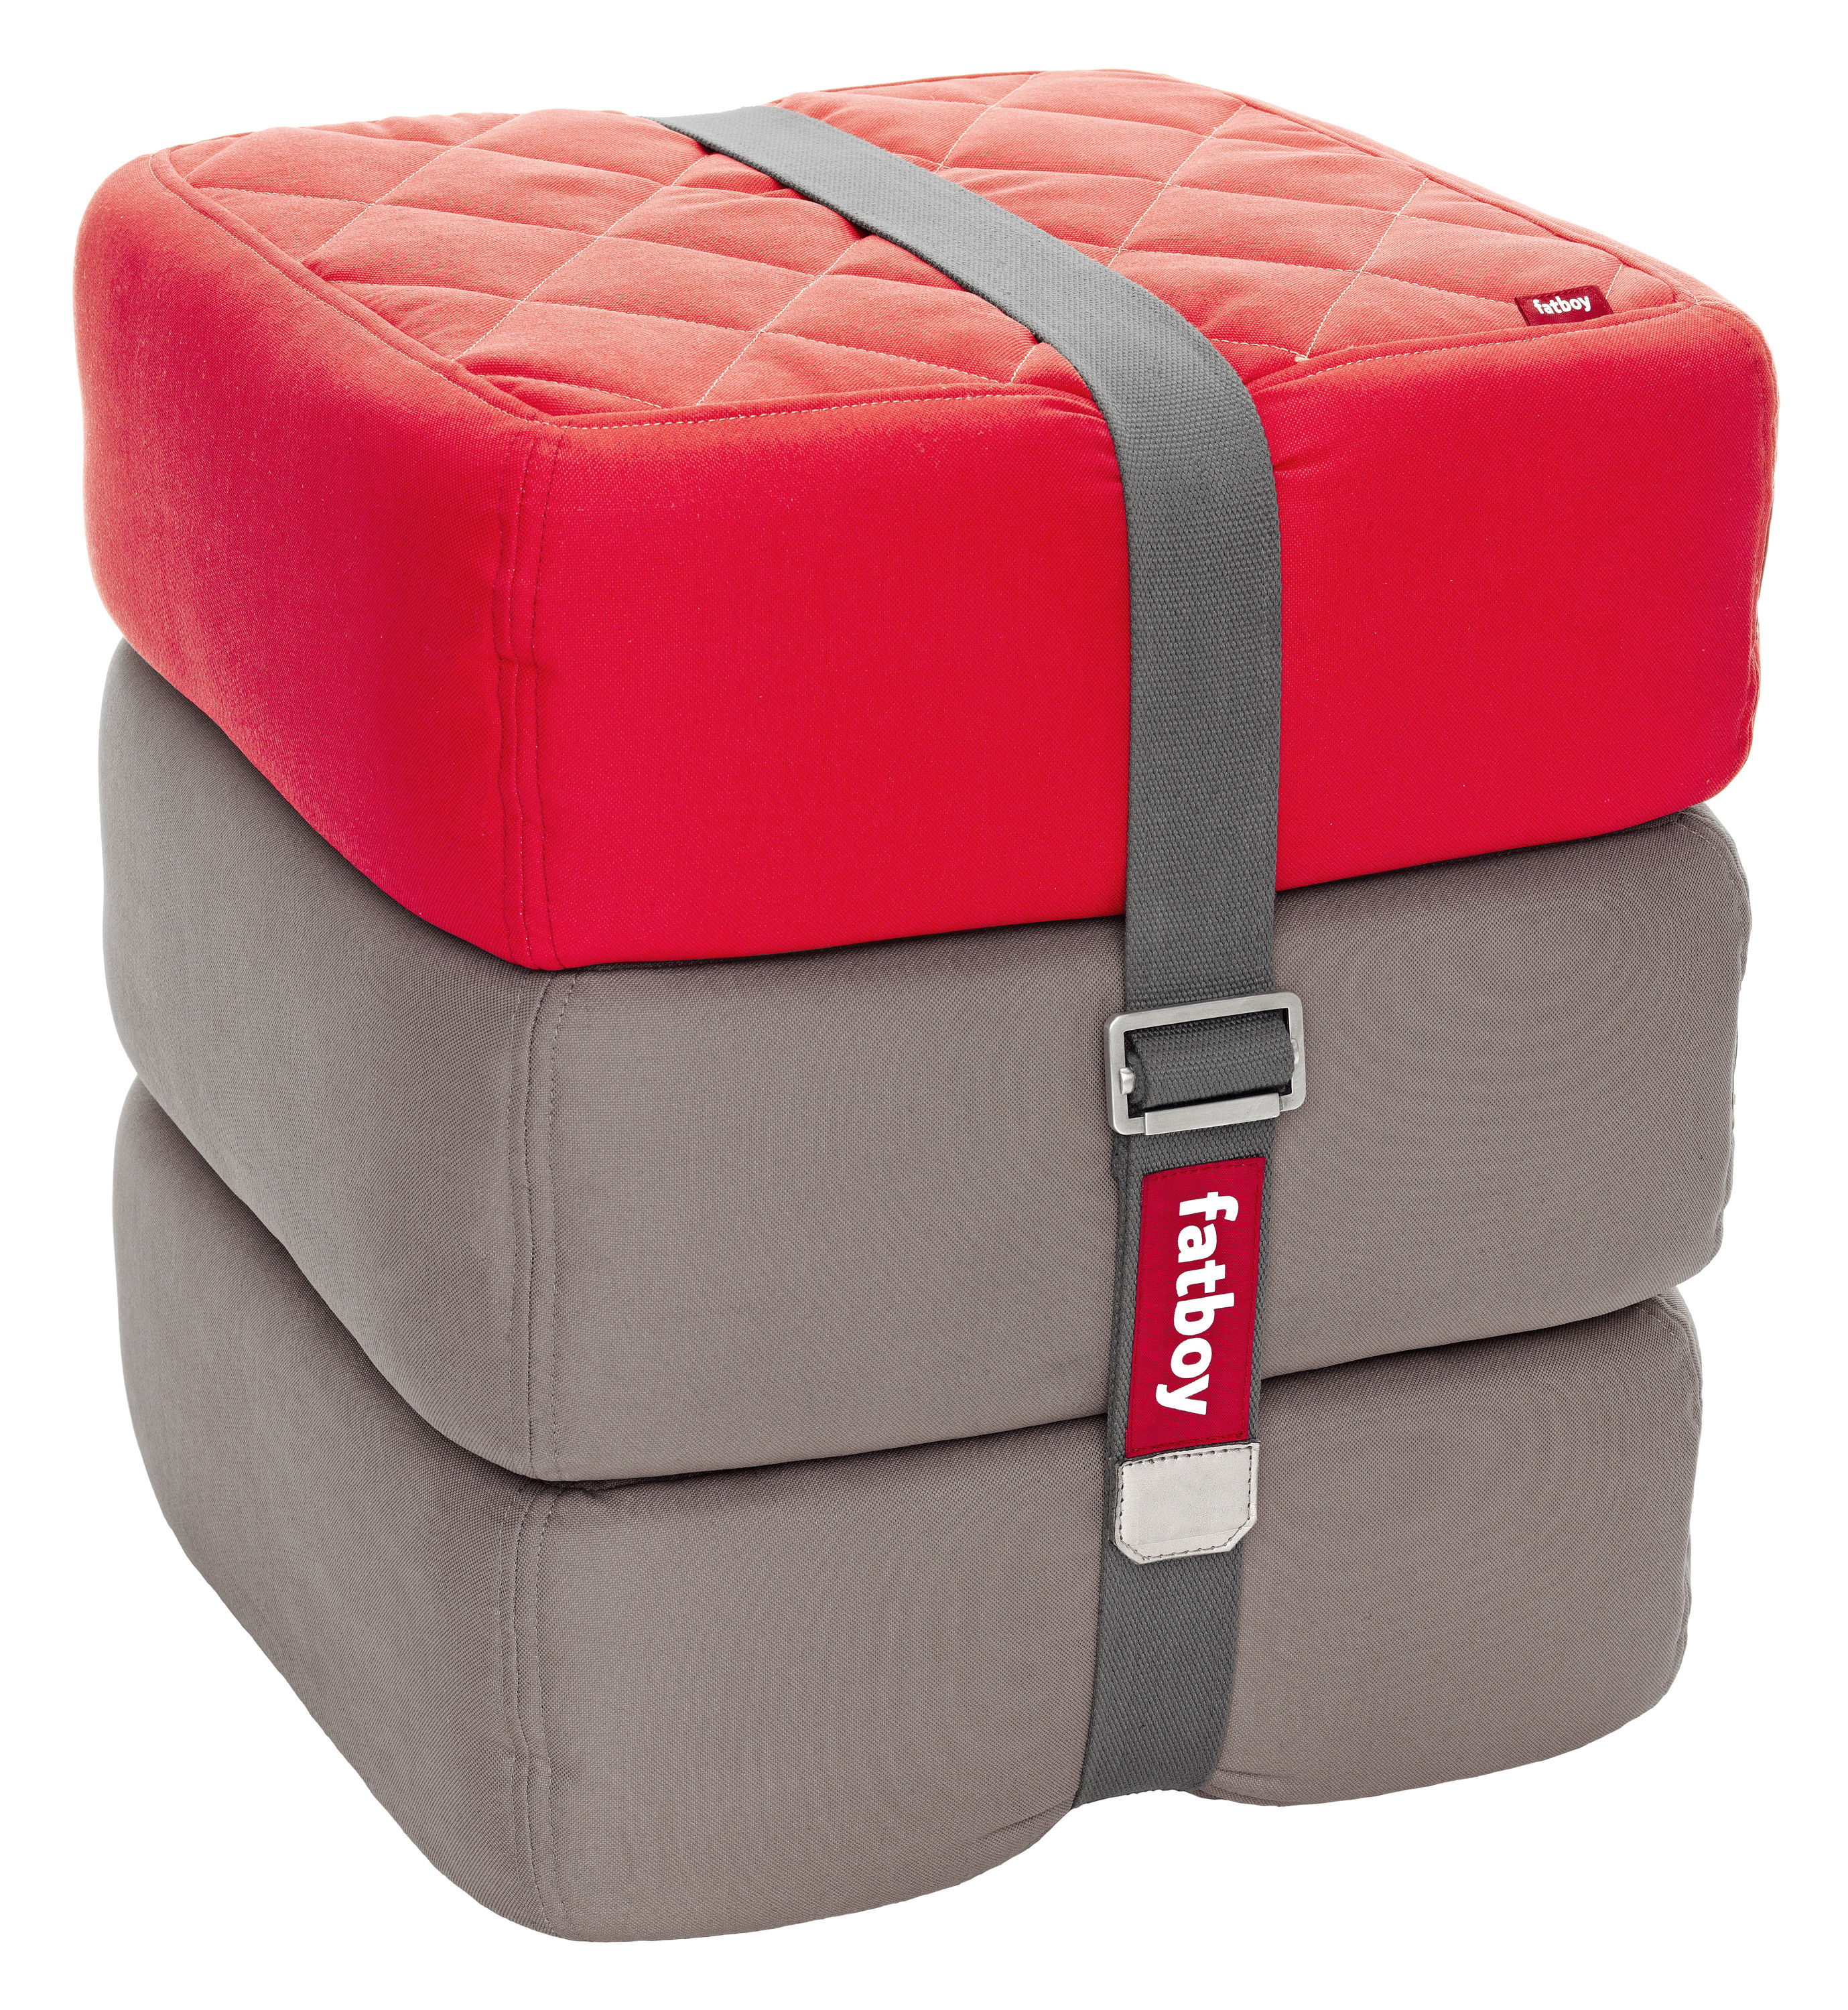 baboesjka pouf set 3 floor cushions red taupe by fatboy. Black Bedroom Furniture Sets. Home Design Ideas